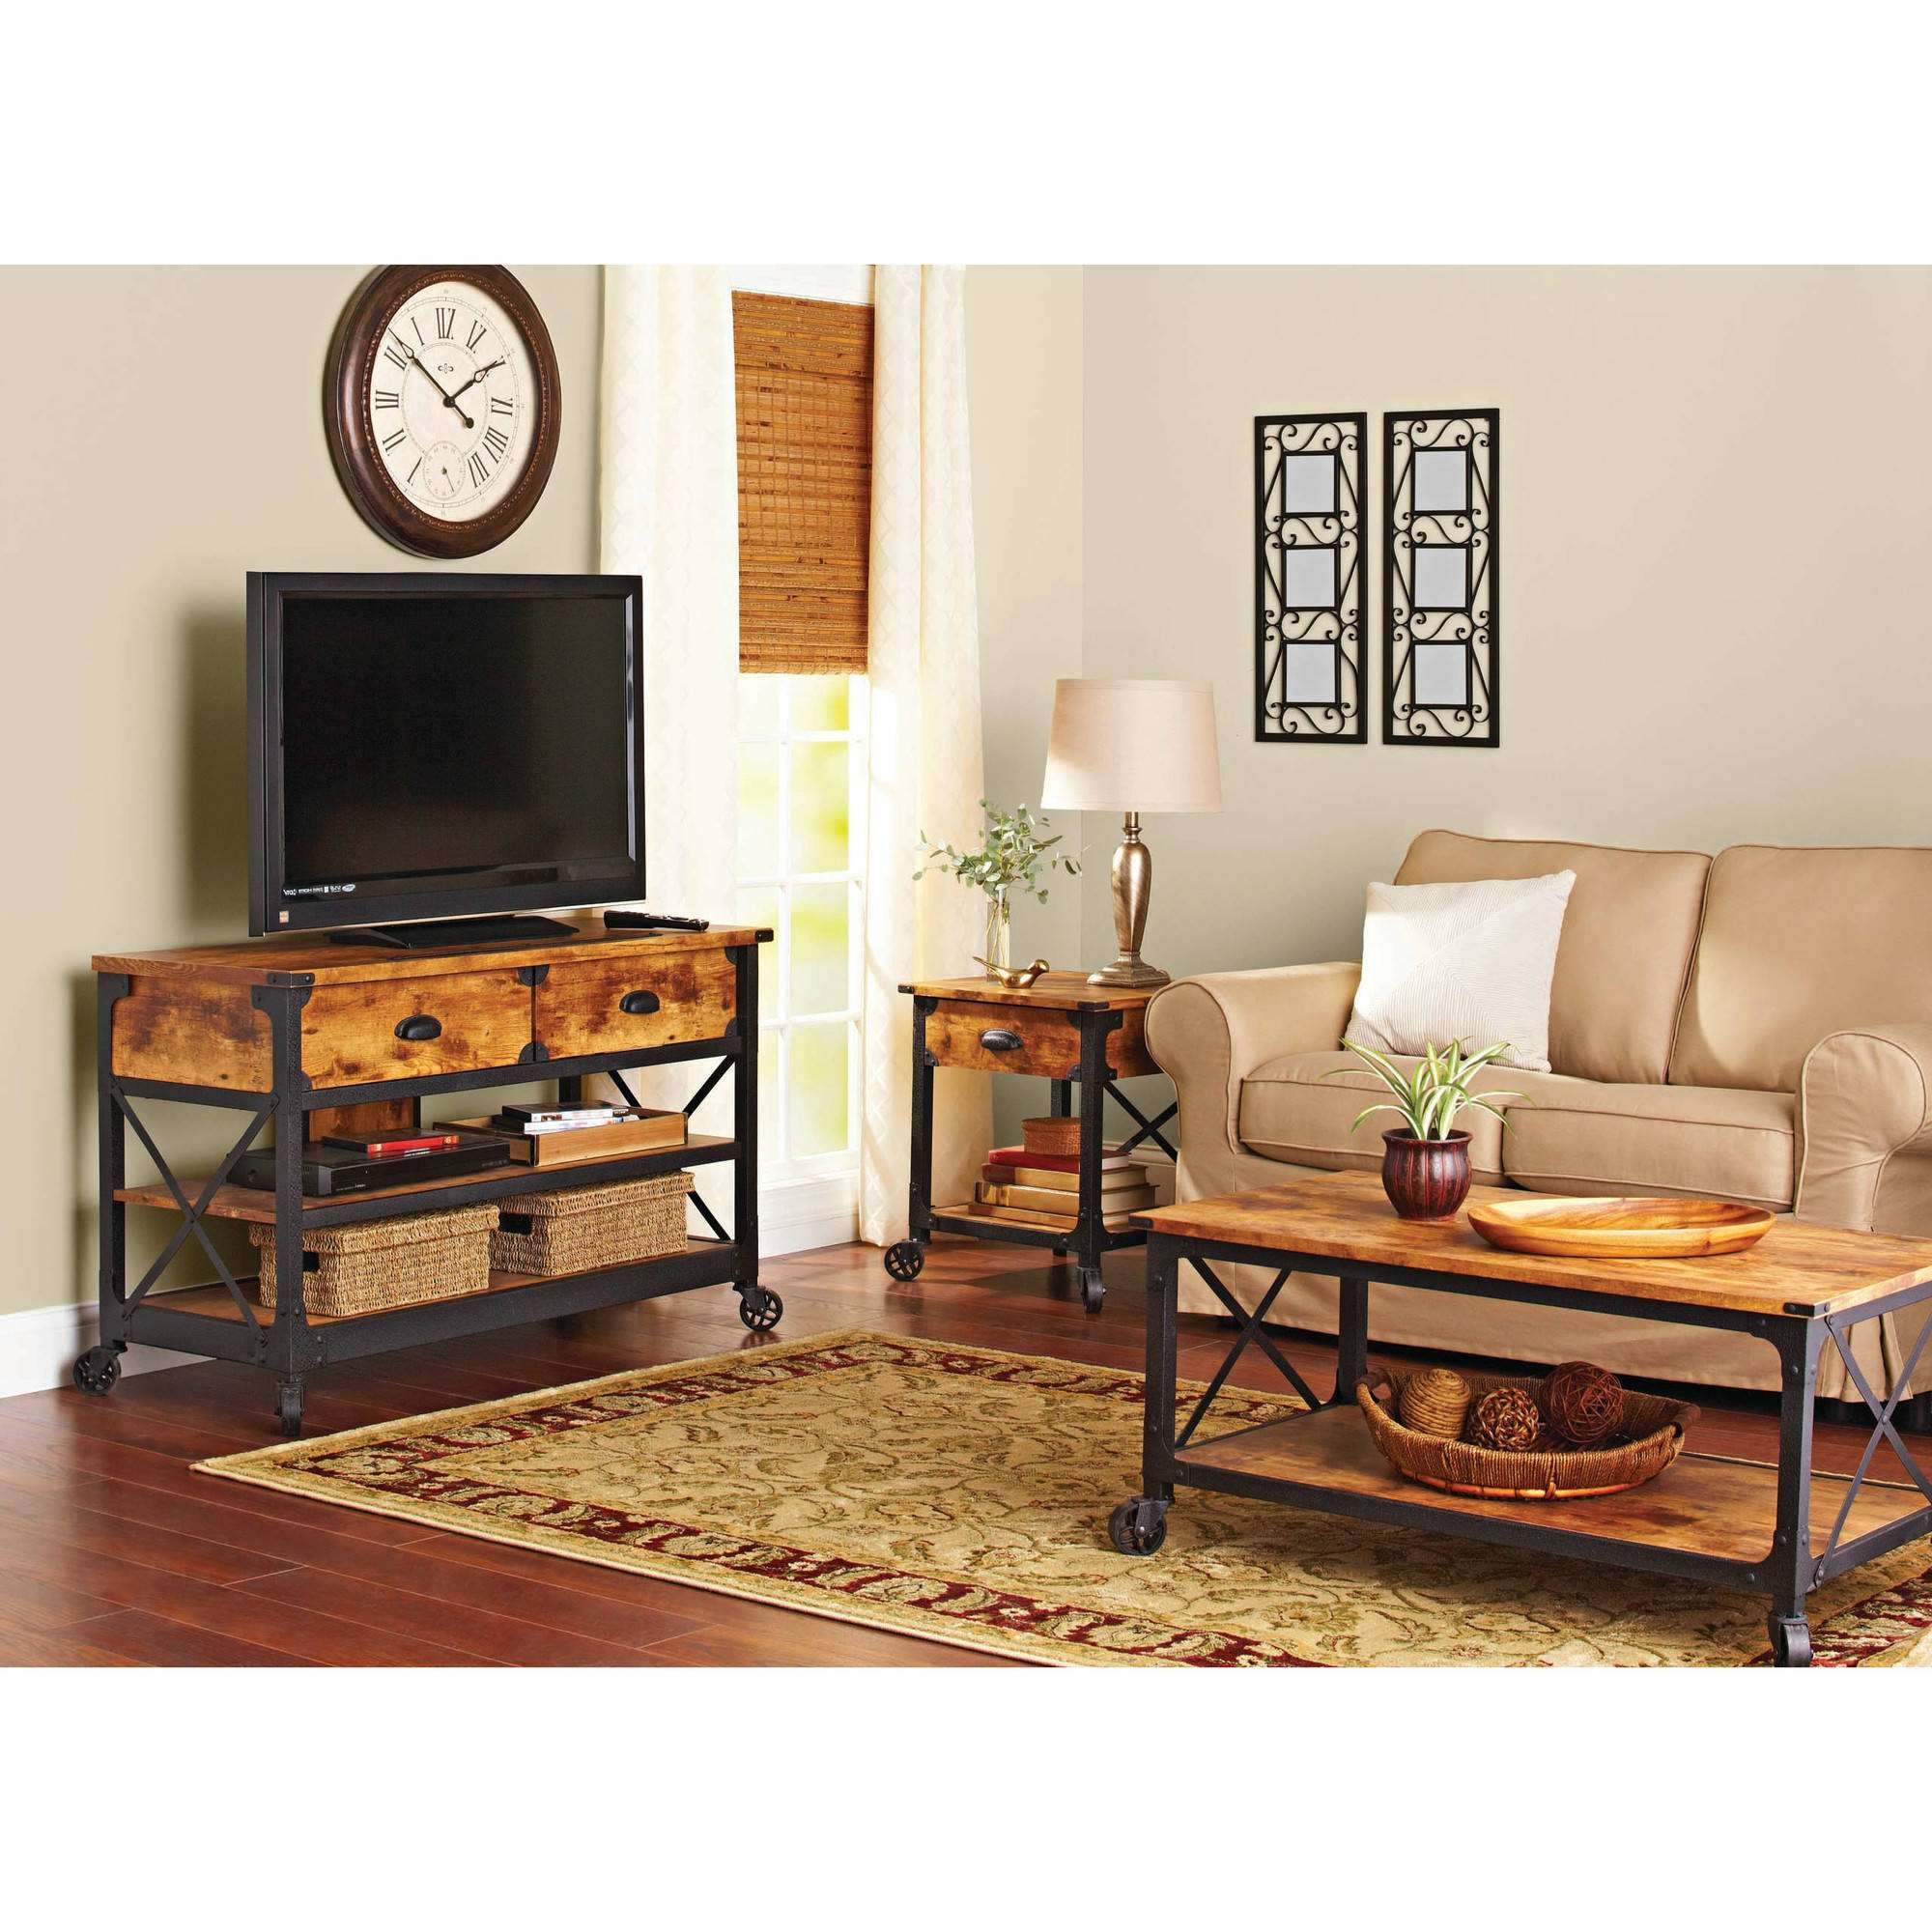 Better Homes And Gardens Rustic Country Living Room Set – Walmart In Rustic Looking Tv Stands (View 14 of 20)